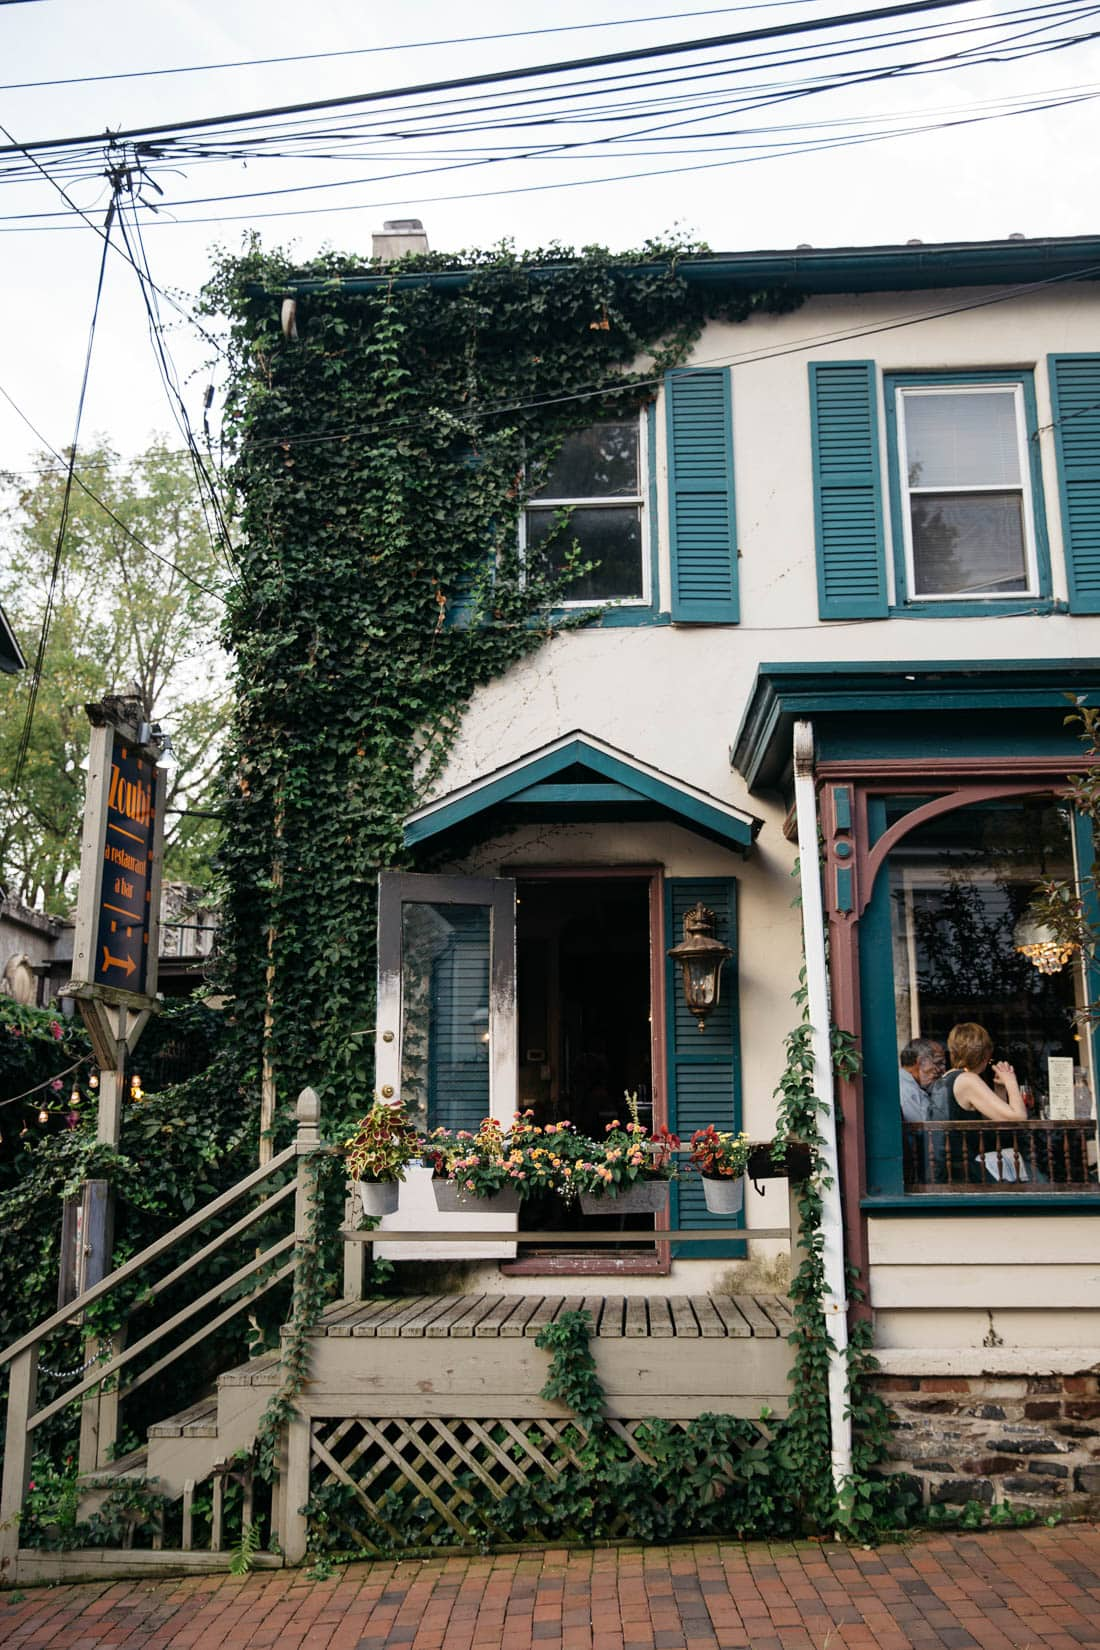 Where to eat in New Hope